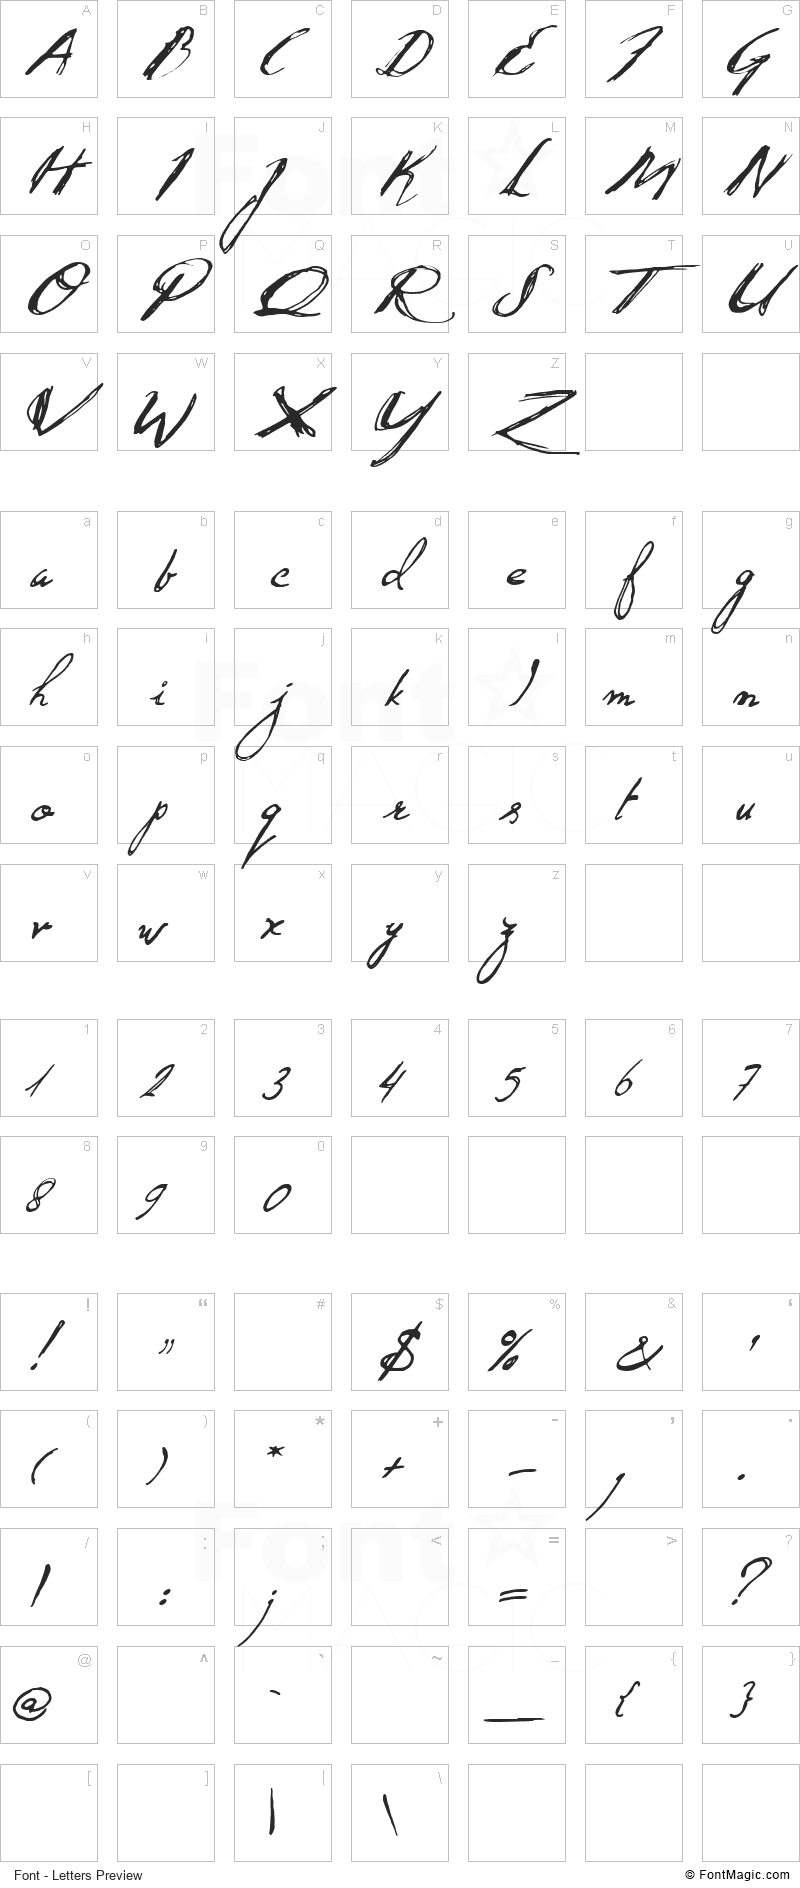 Quid Pro Quo Font - All Latters Preview Chart